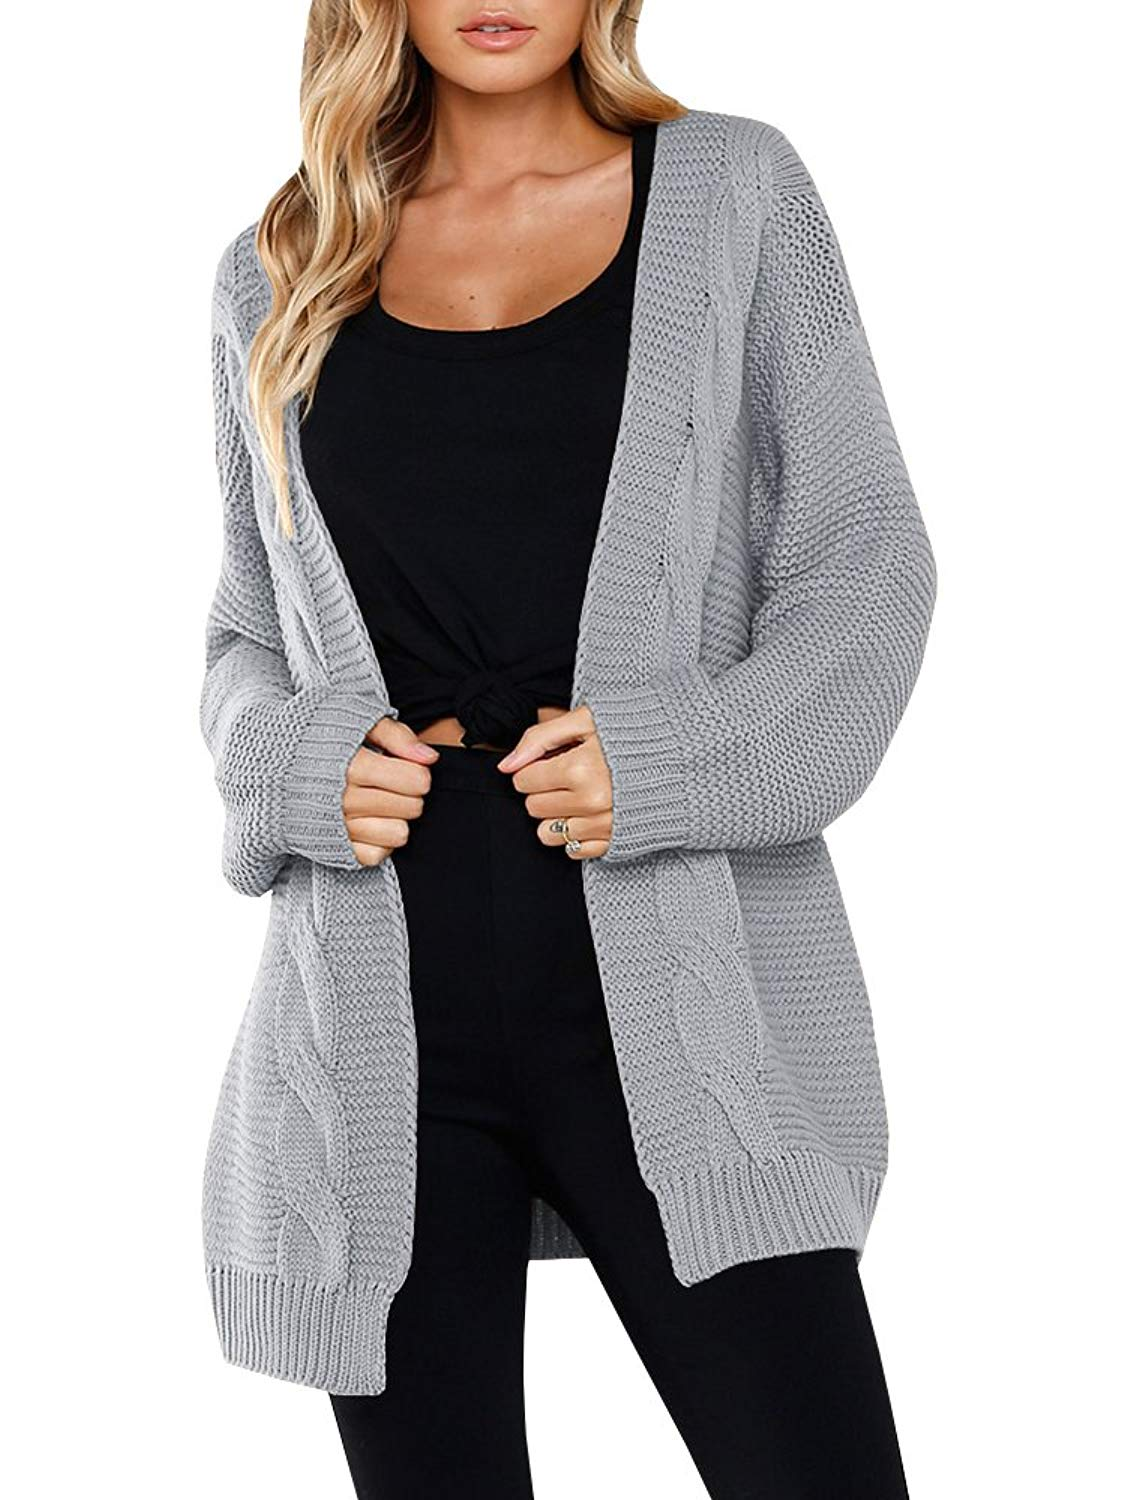 Mafulus Womens Cardigans Open Front Long Sleeve Cable Knit Chunky Cardigan Sweaters